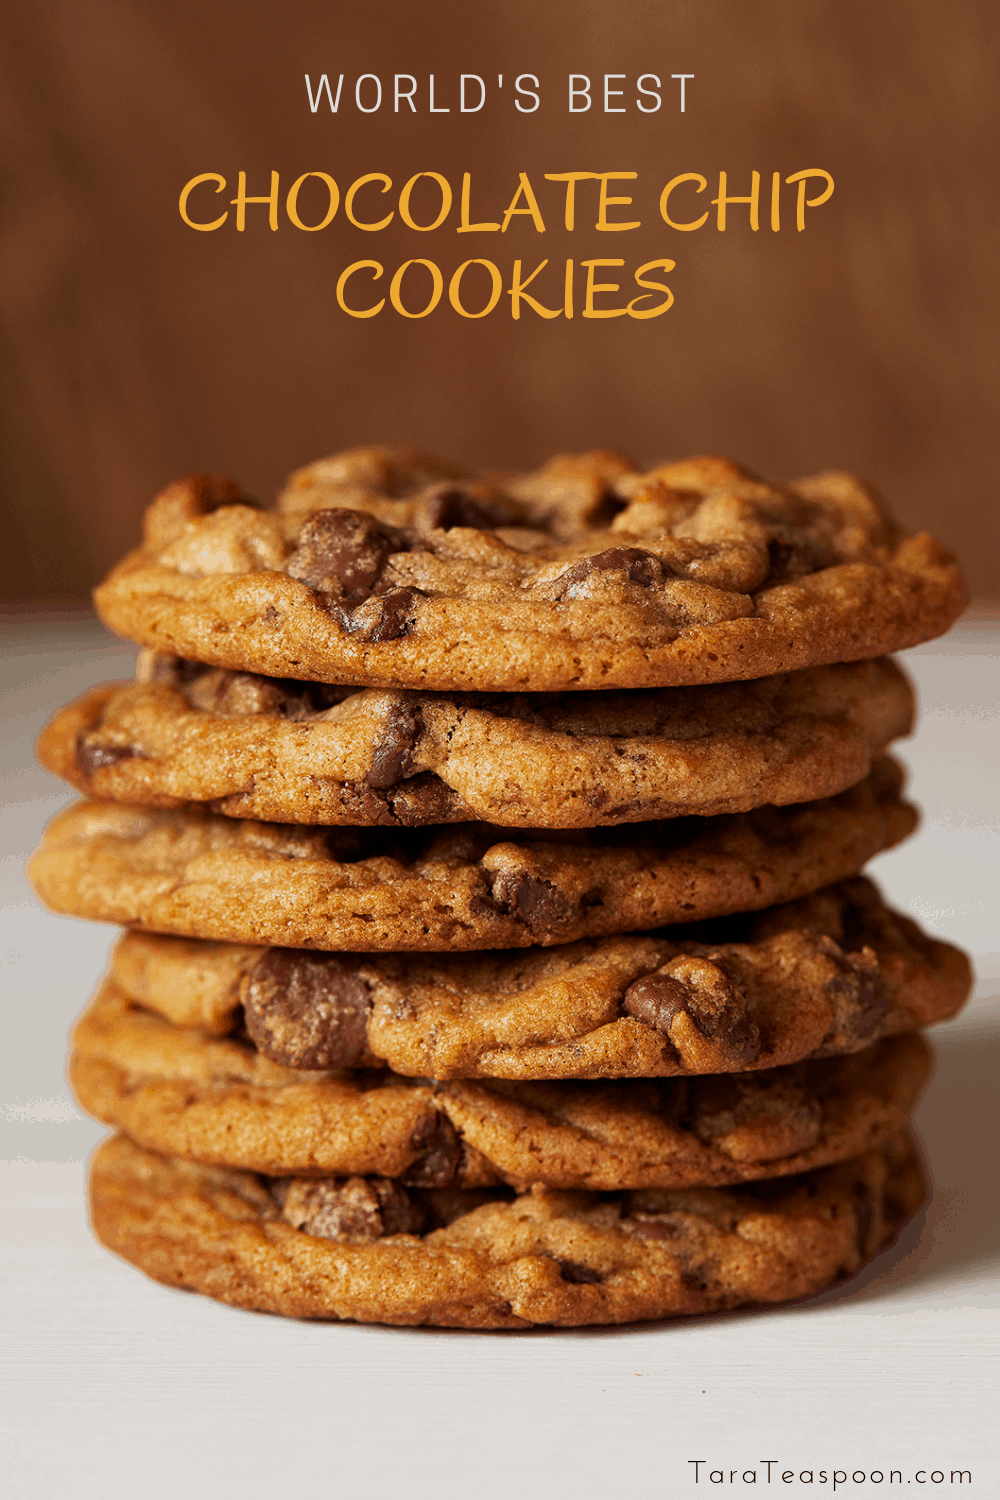 The Best Ever Chocolate Chip Cookies - Award Winning! | Tara Teaspoon